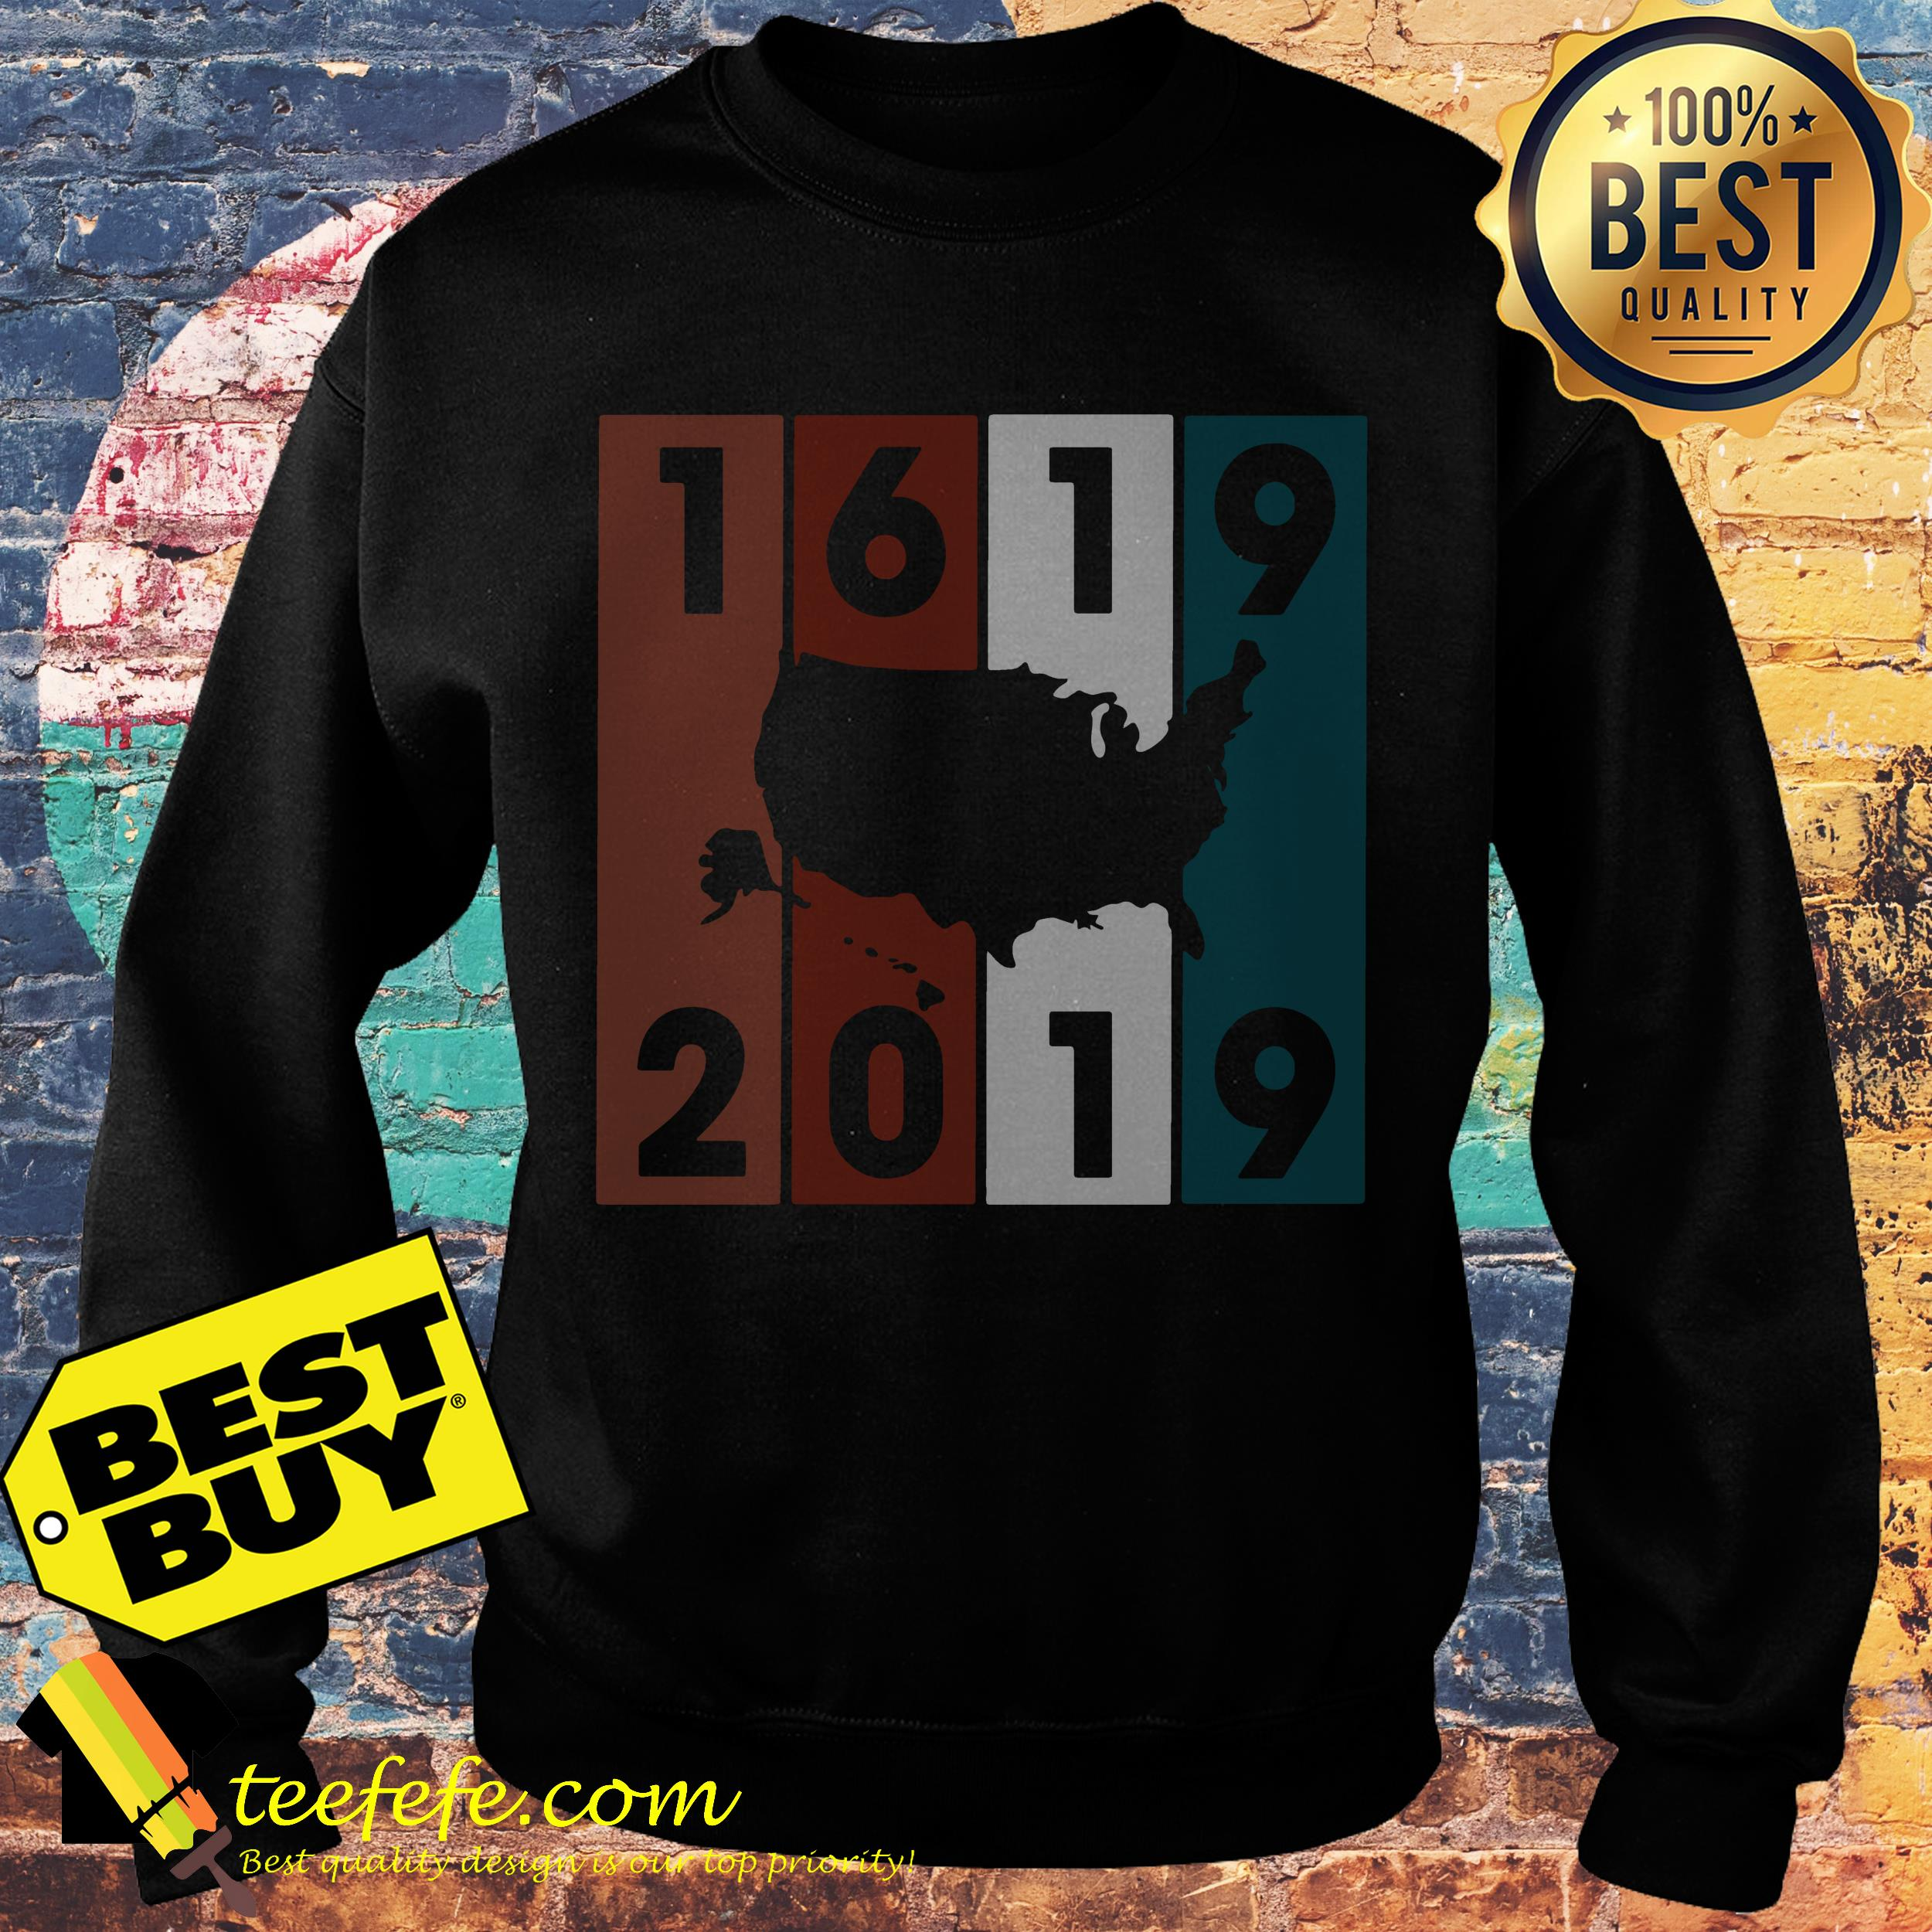 1619-2019 USA Map Crewneck sweatshirt